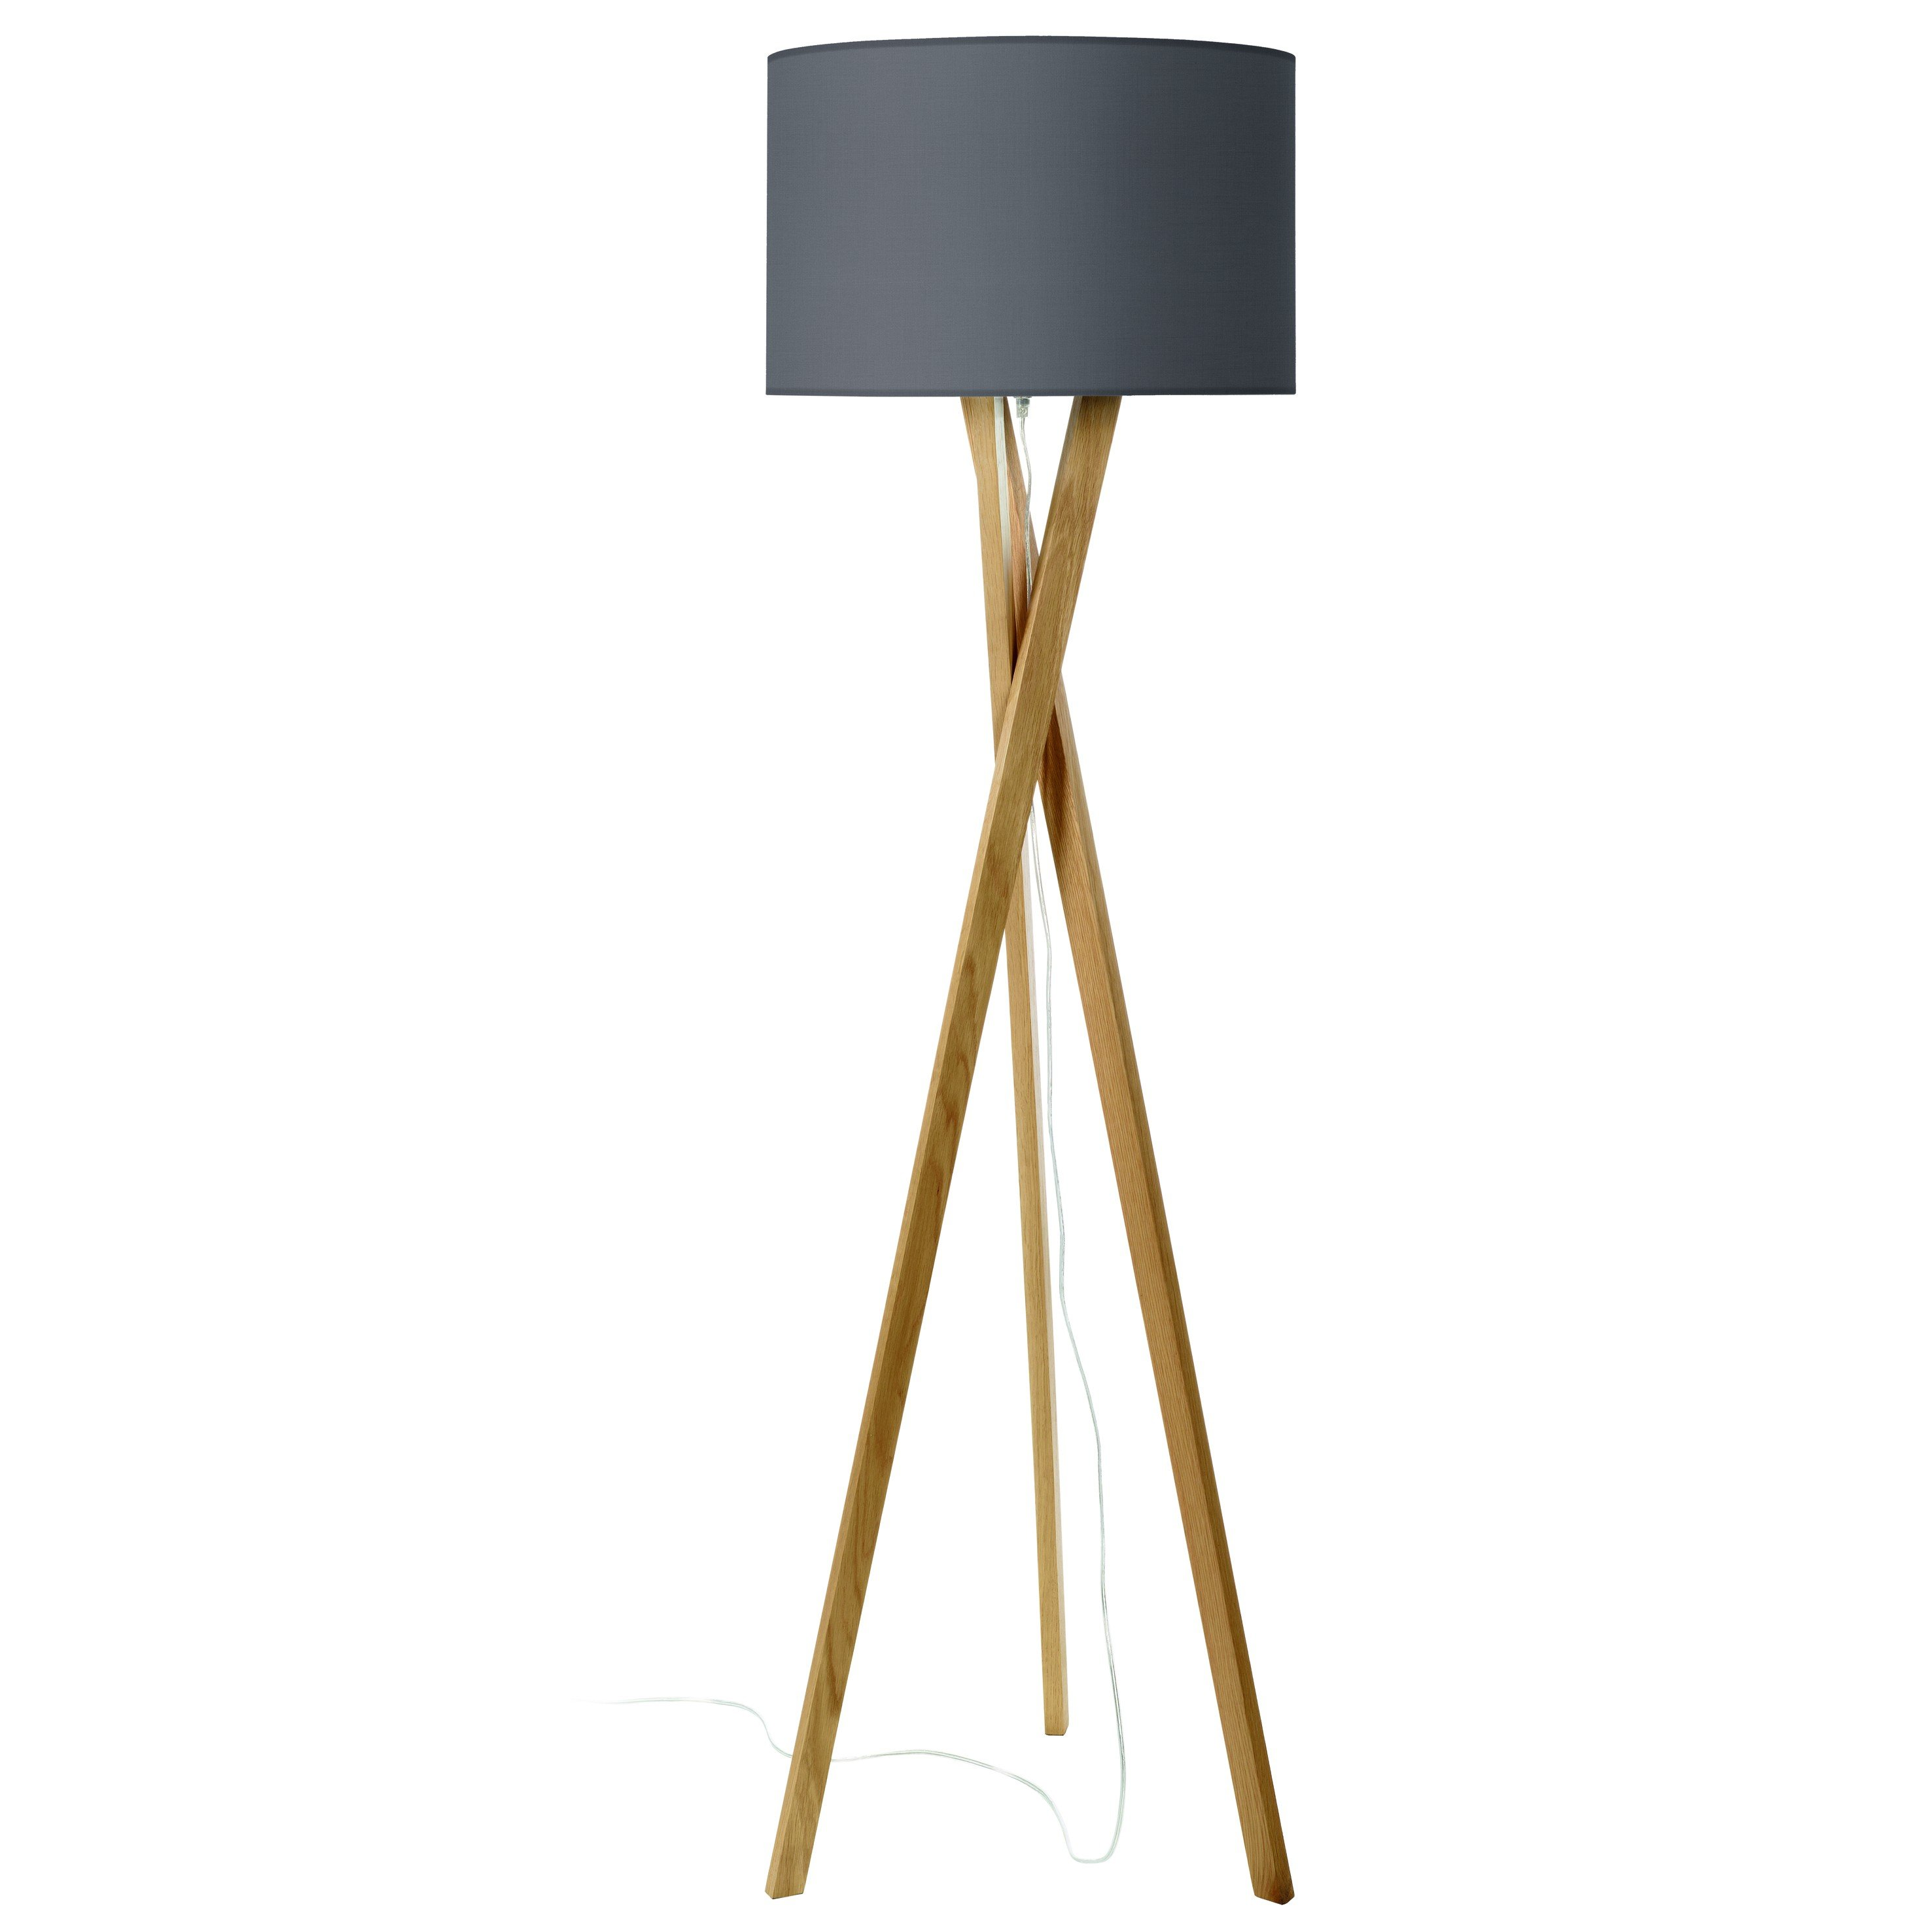 Lampara De Pie Salon Exo Lighting Wood Lámpara De Pie Madera Haya LÁmparas